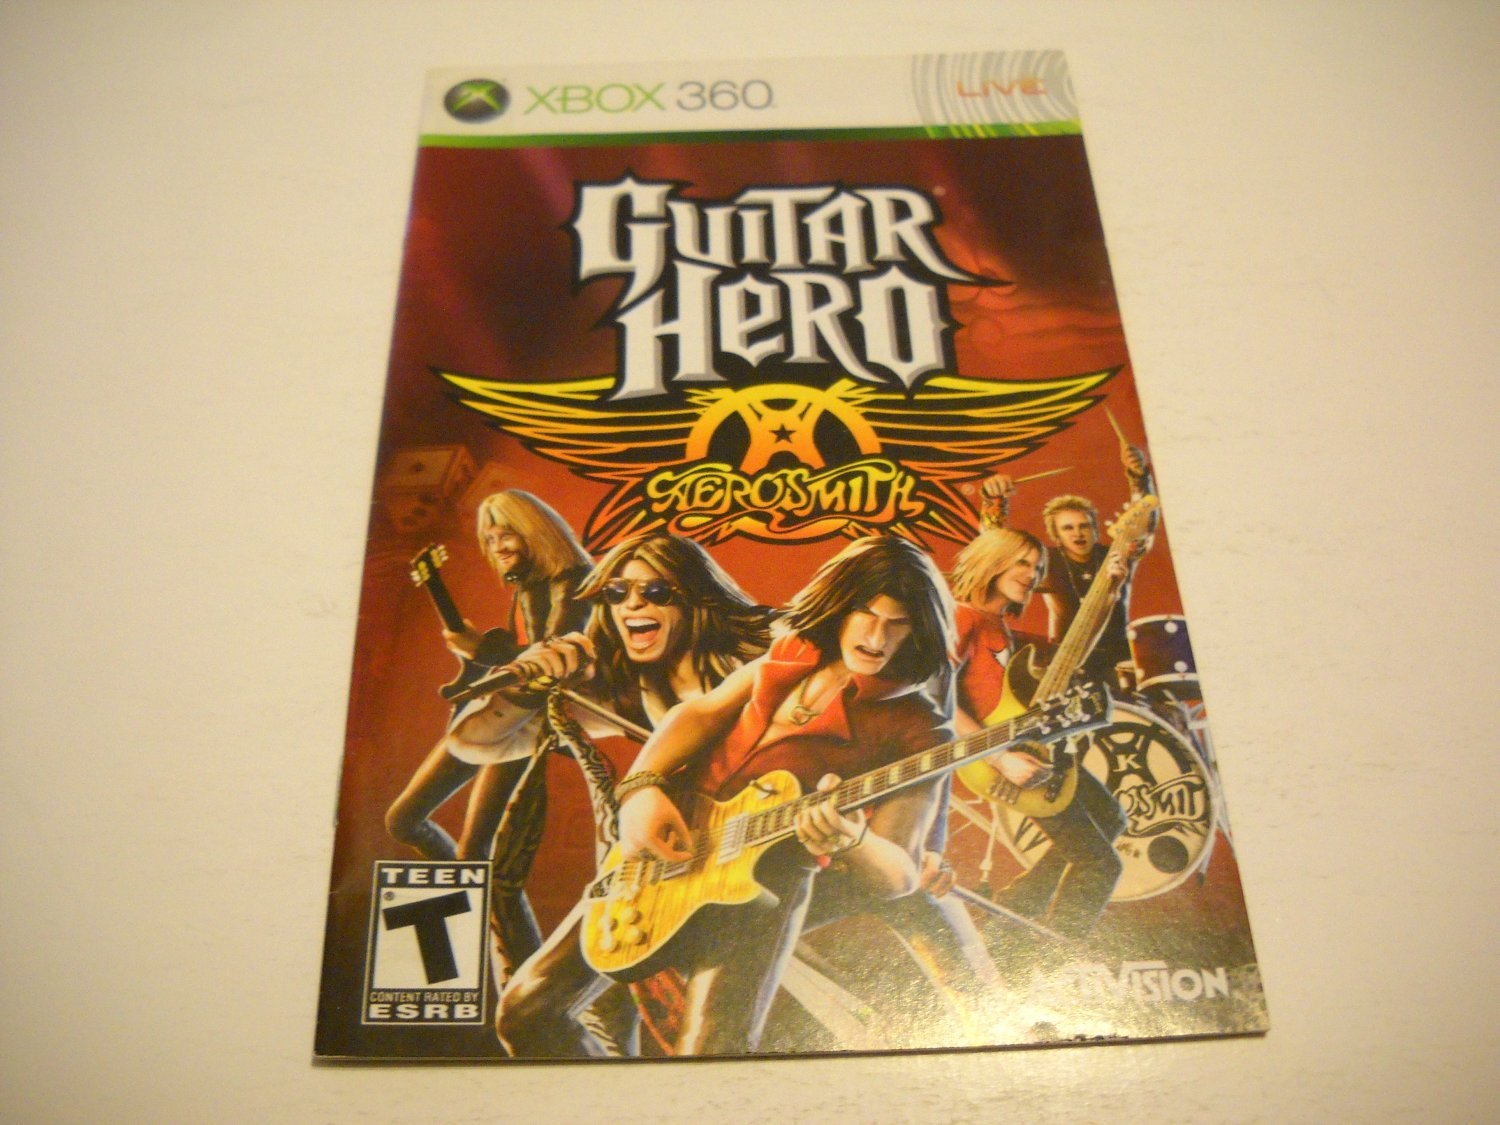 Manual ONLY ~  for Guitar Hero Aerosmith   - Xbox 360 Instruction Booklet